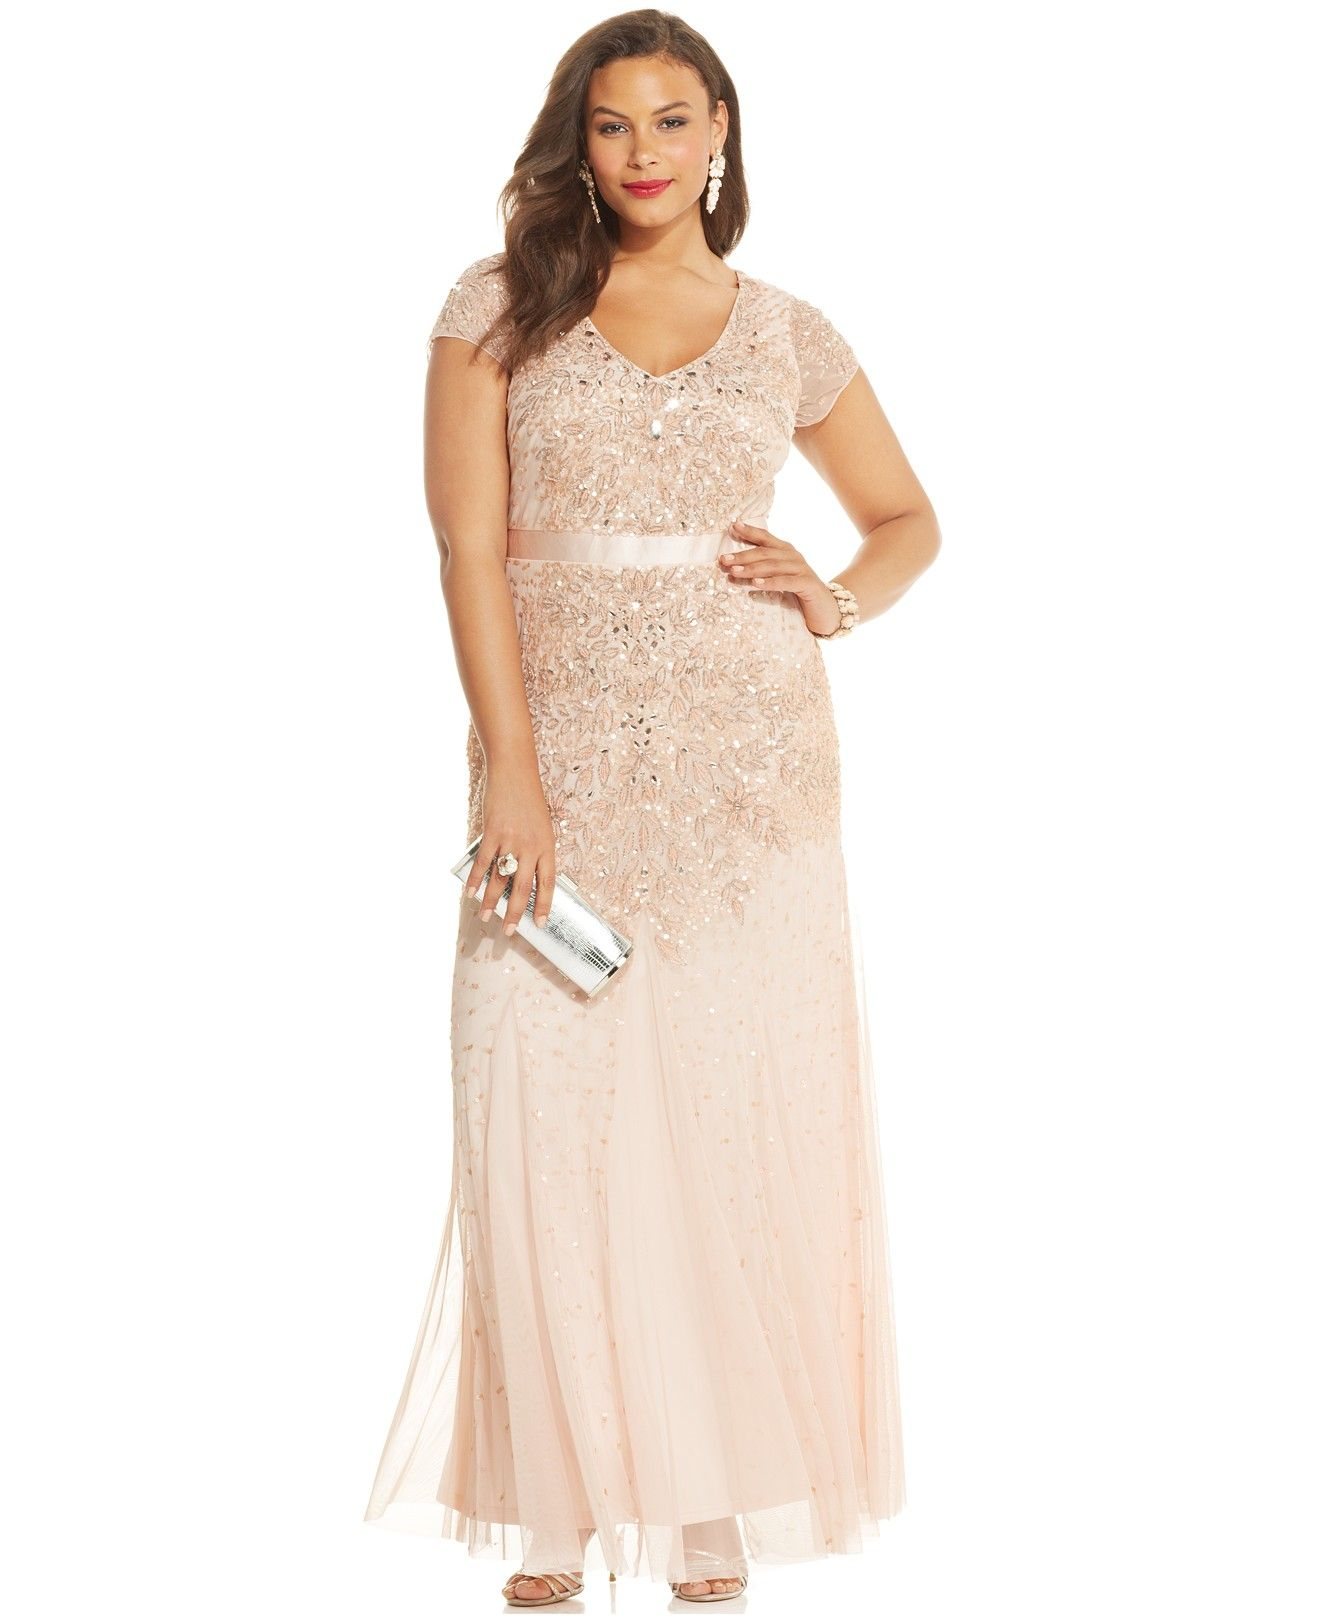 Adrianna papell plus size cap sleeve embellished gown dresses adrianna papell plus size cap sleeve embellished gown dresses plus sizes macys ombrellifo Images